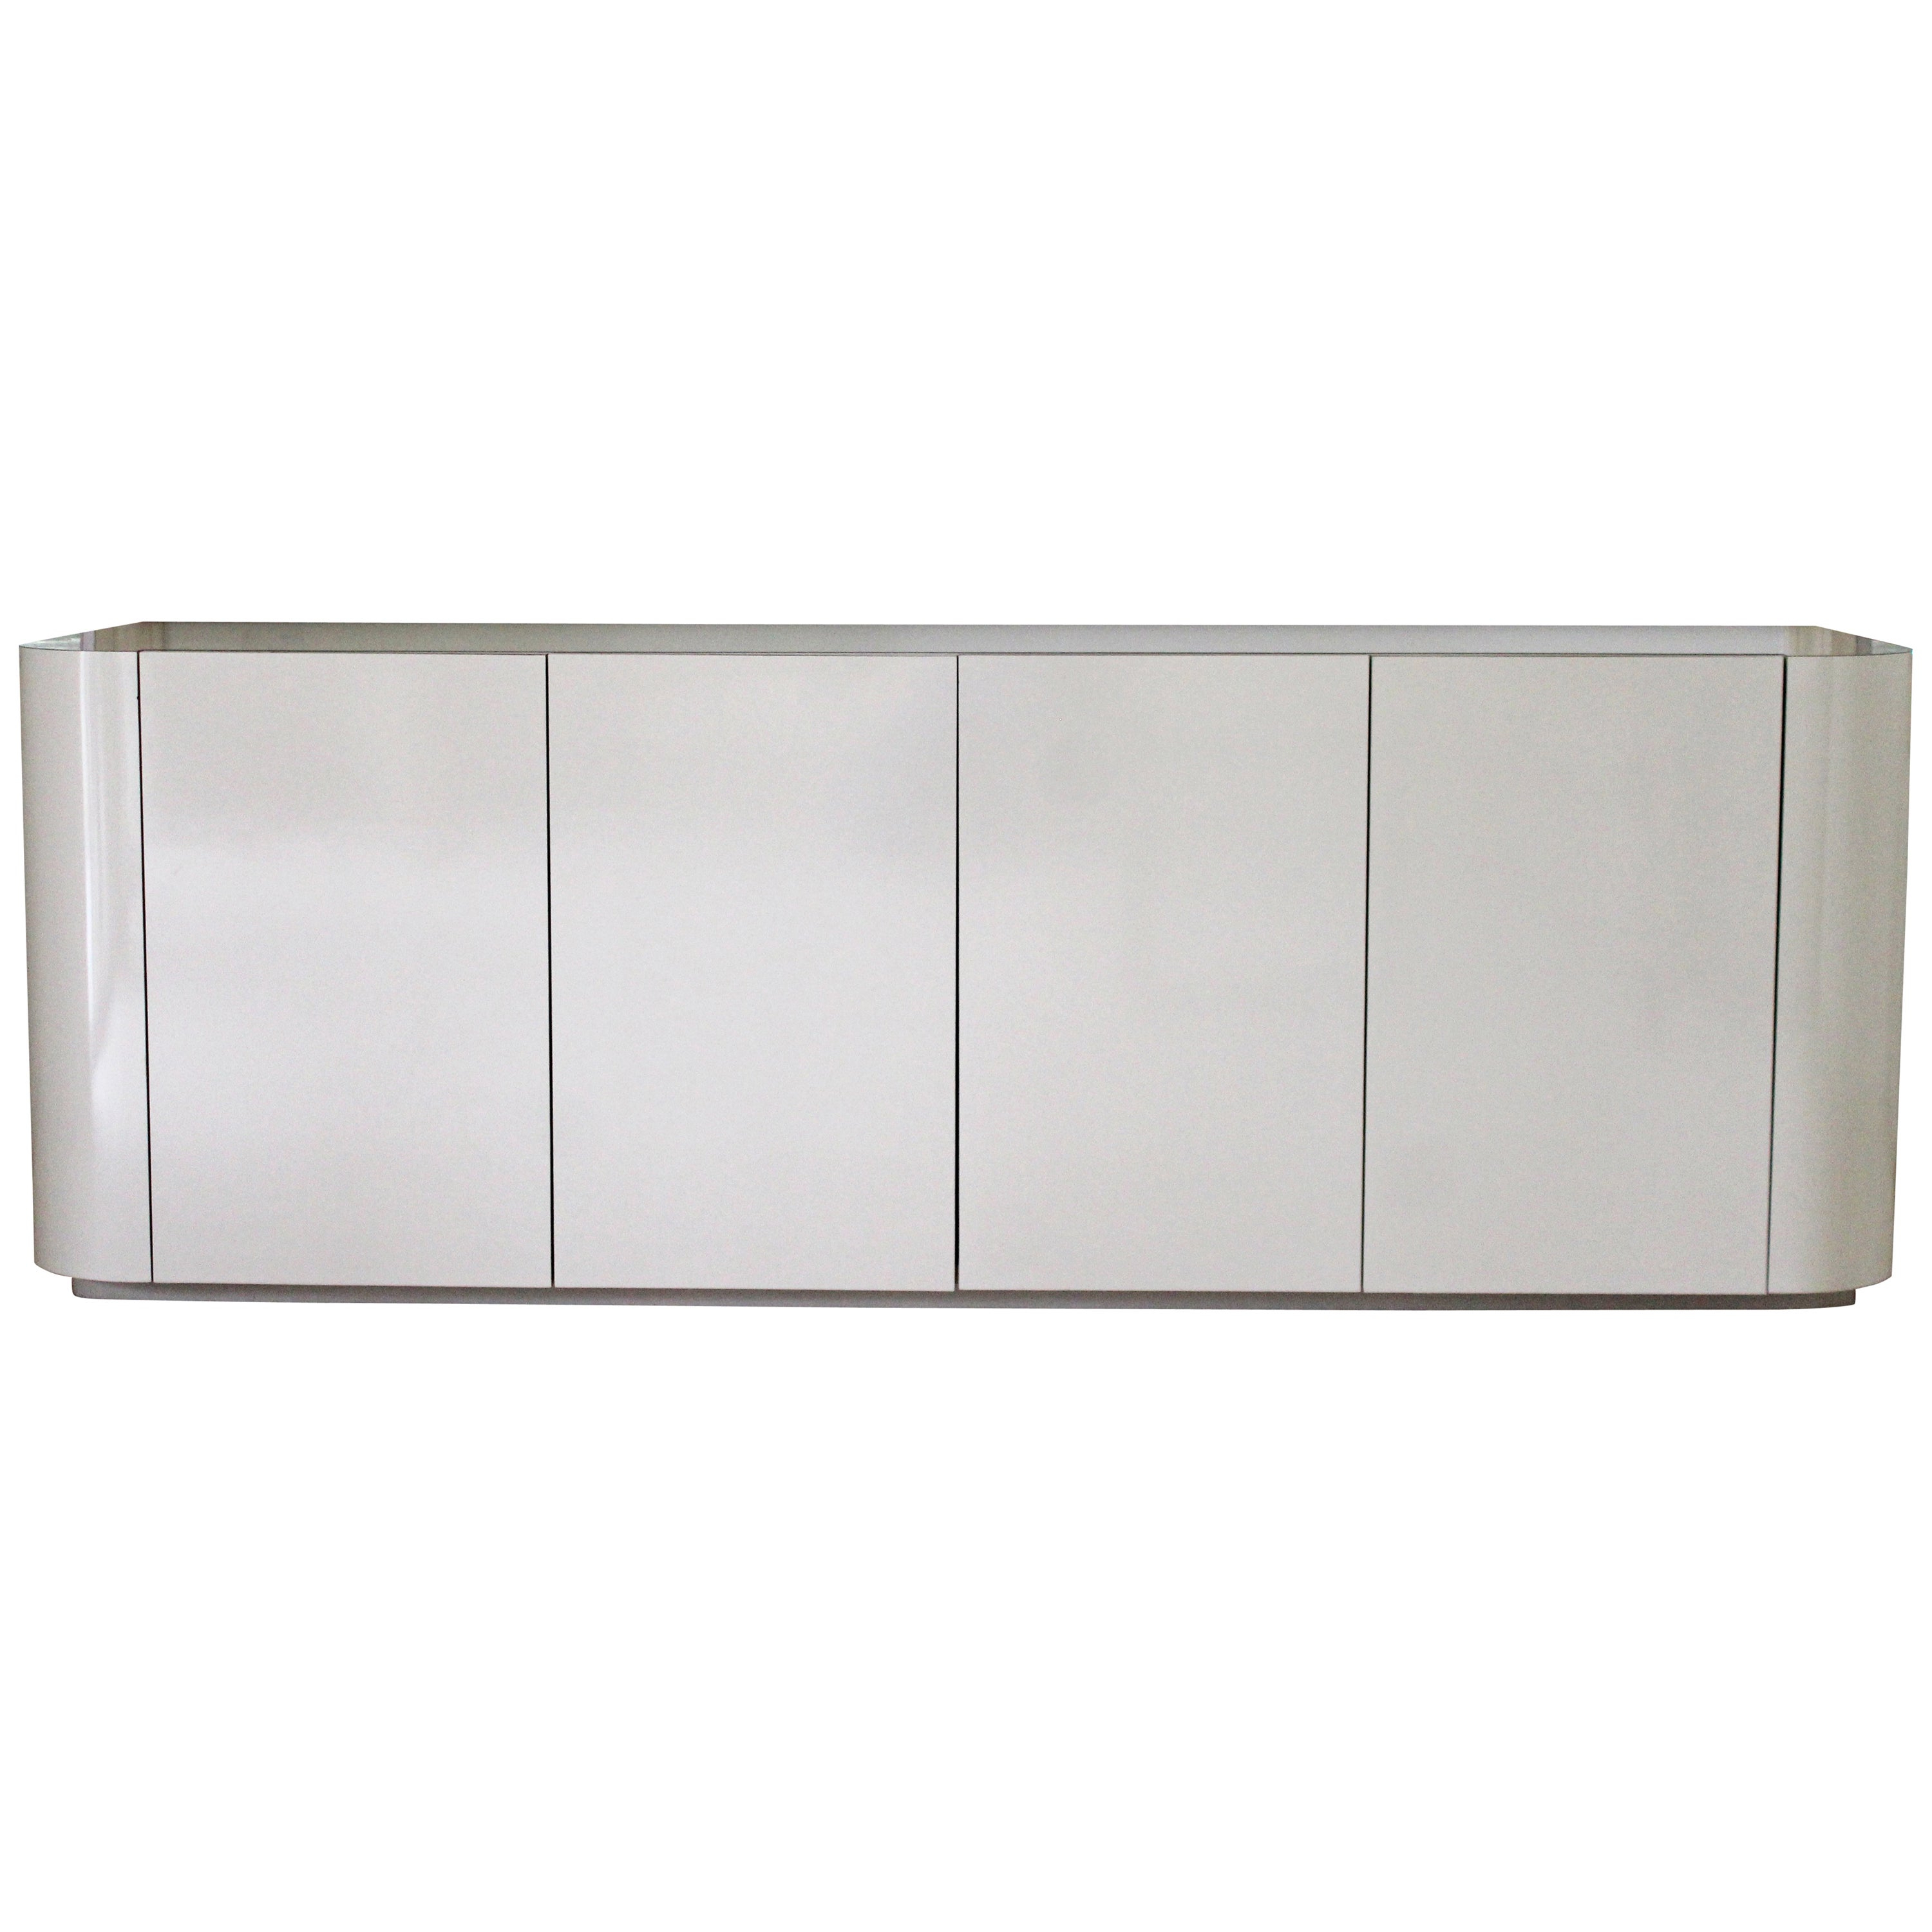 Abhinav Credenzas Pertaining To Current White Credenza Cabinet (View 20 of 20)